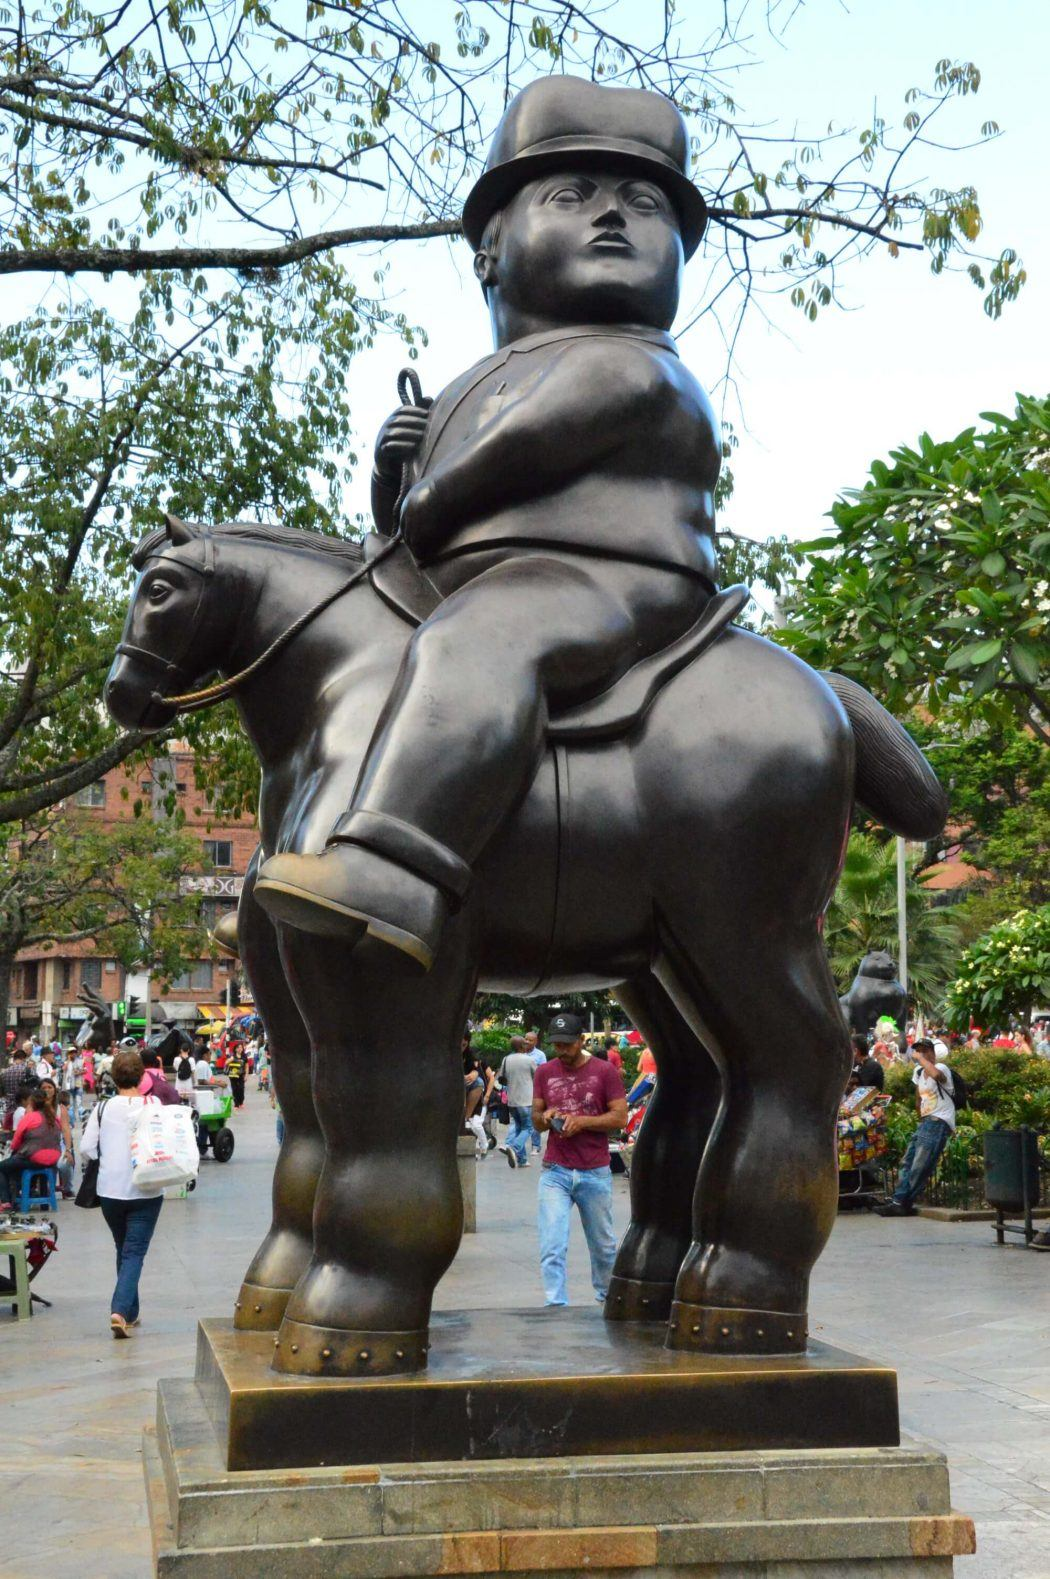 botero statue of man on horse in plaza botero